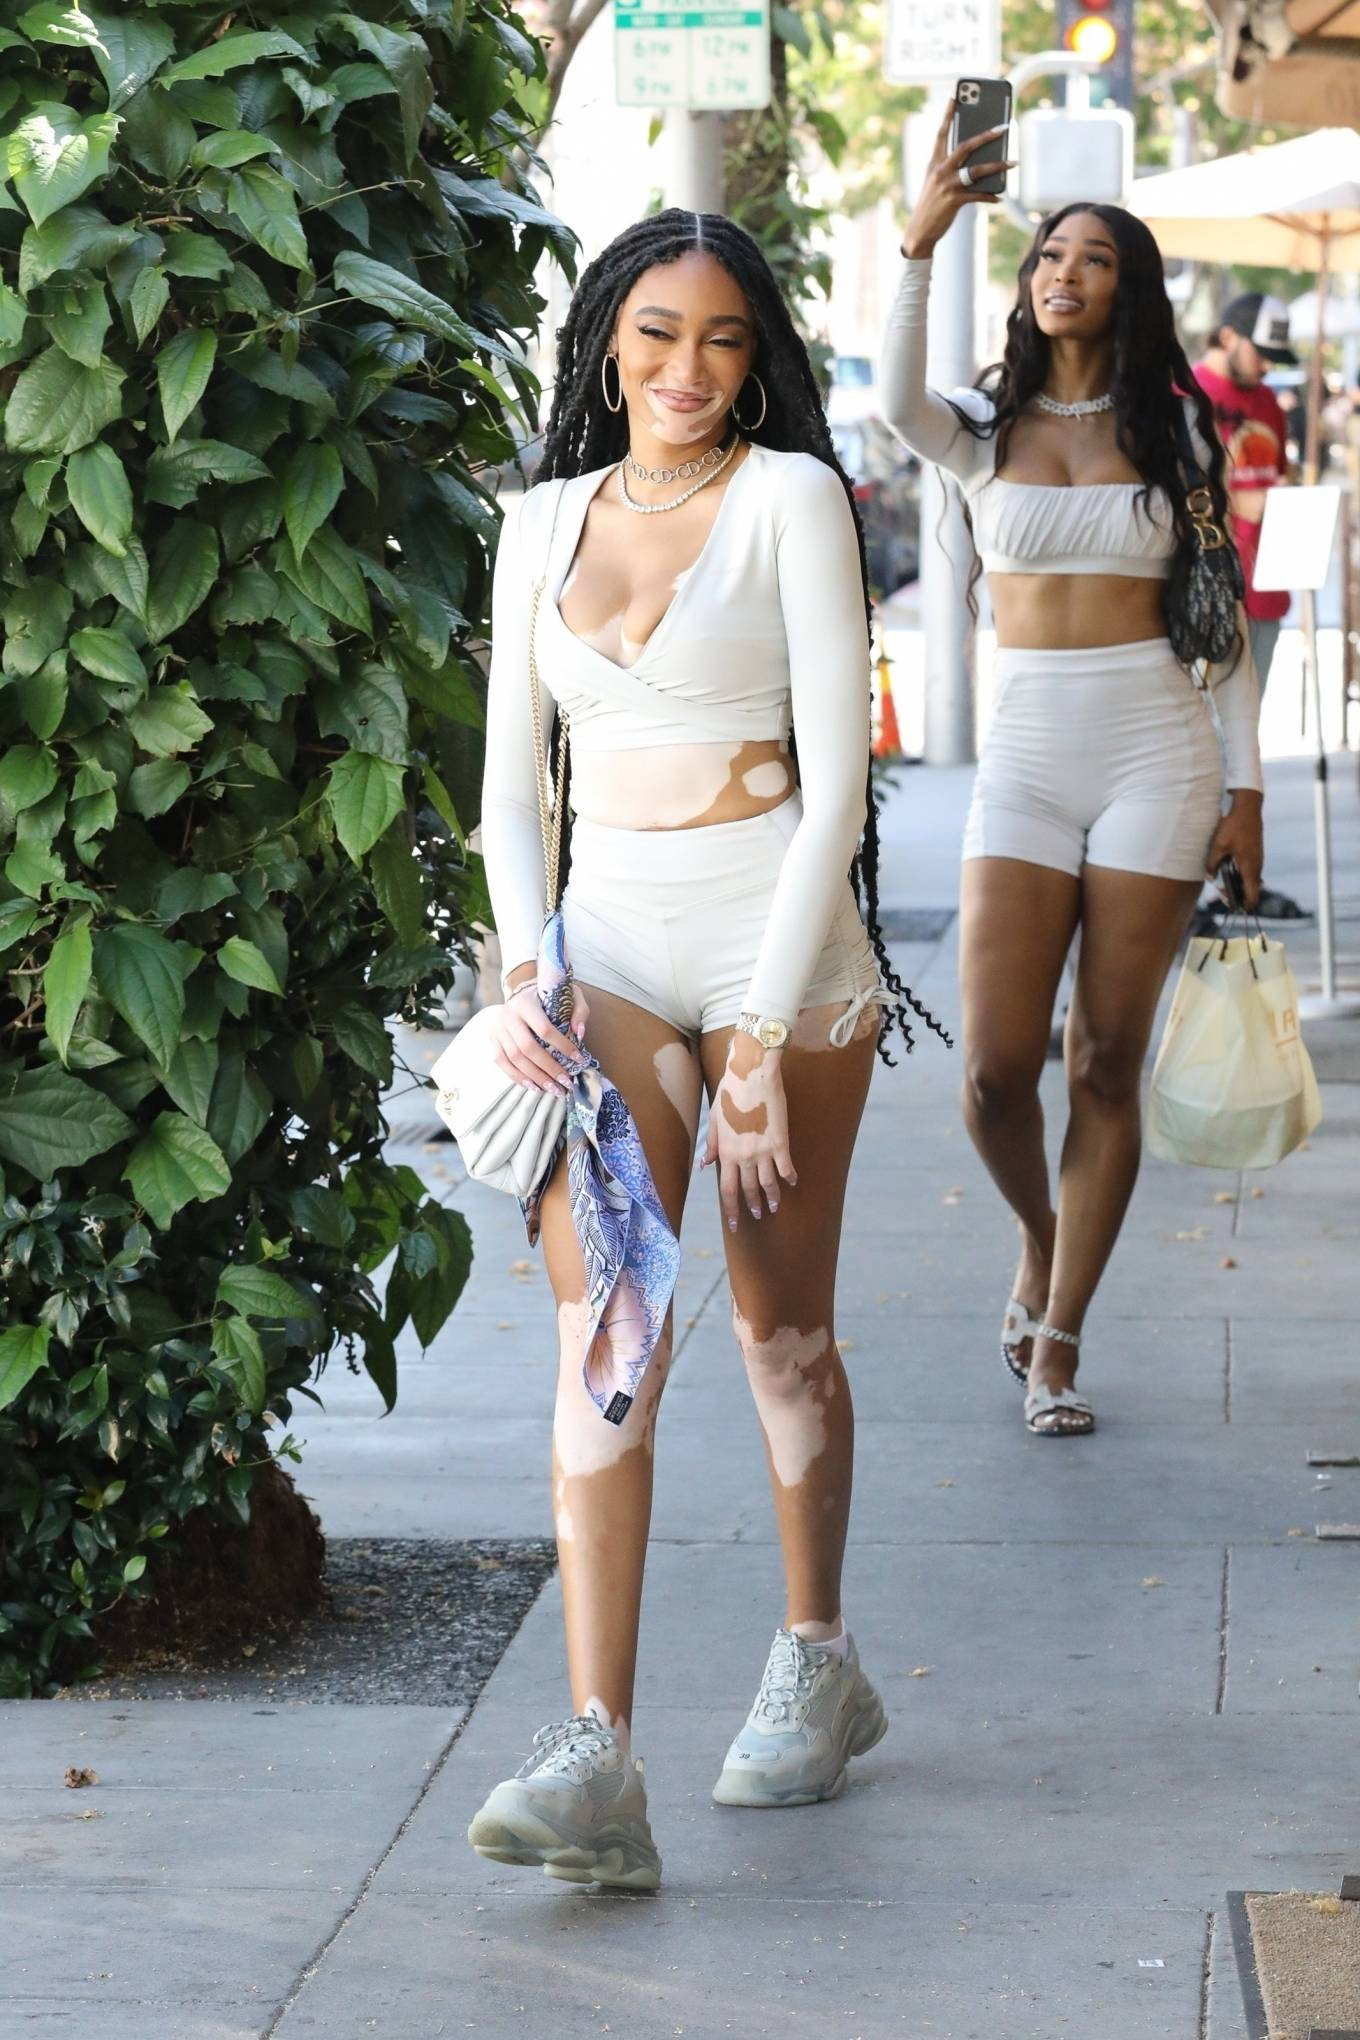 Winnie Harlow wearing skimpy white high rise bite shorts with a stretch fabric material